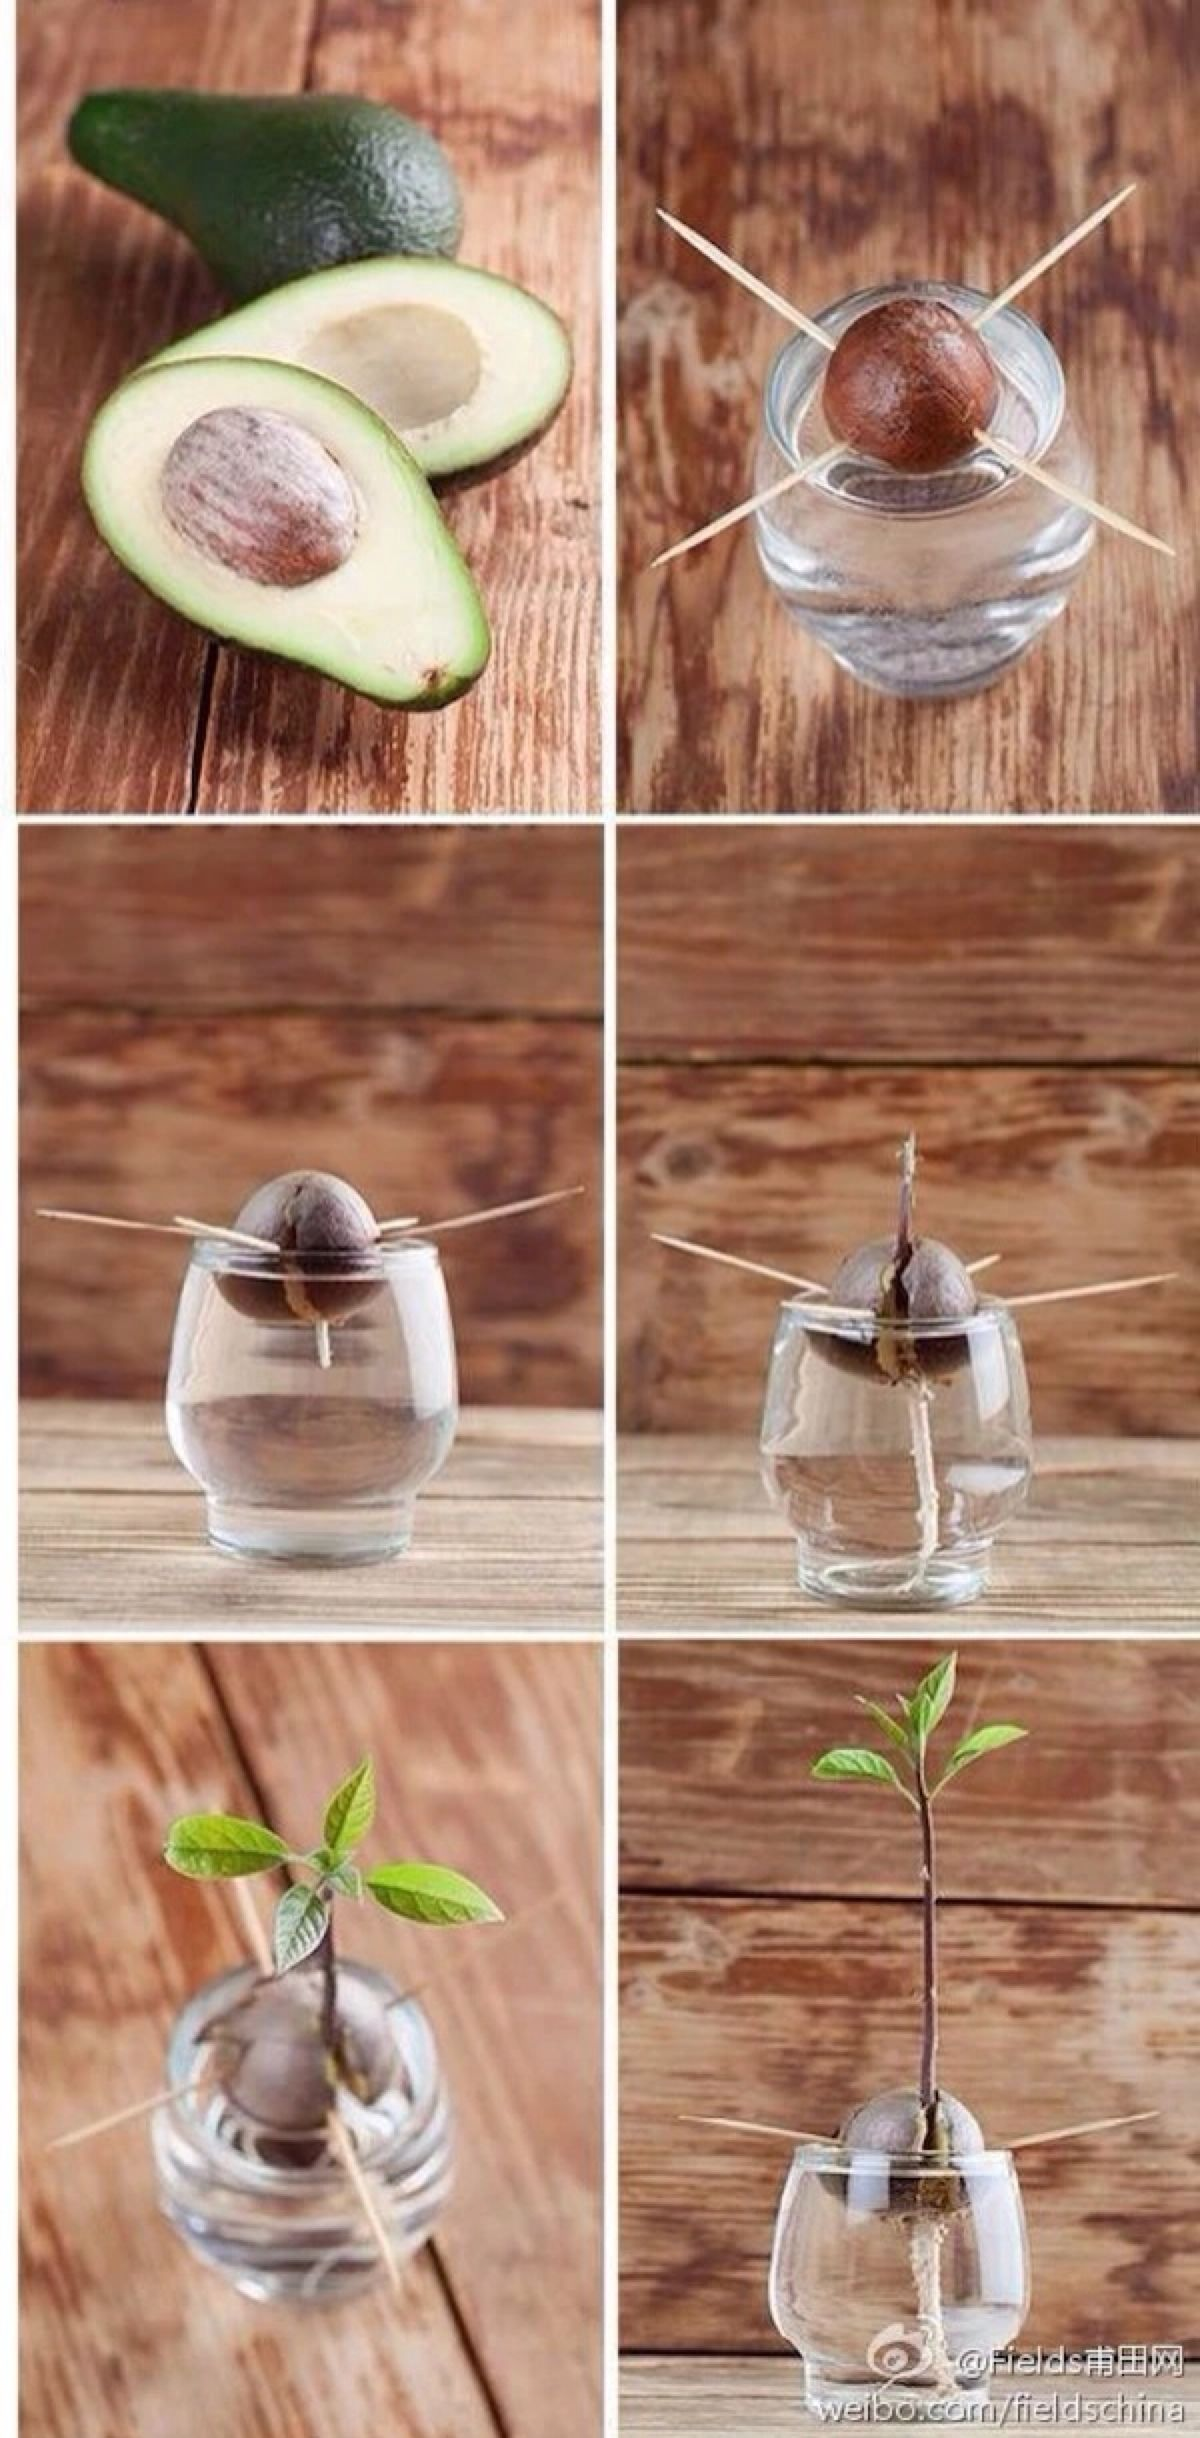 Potted Avocado Seed Vegetable Garden Plants Planting Flowers